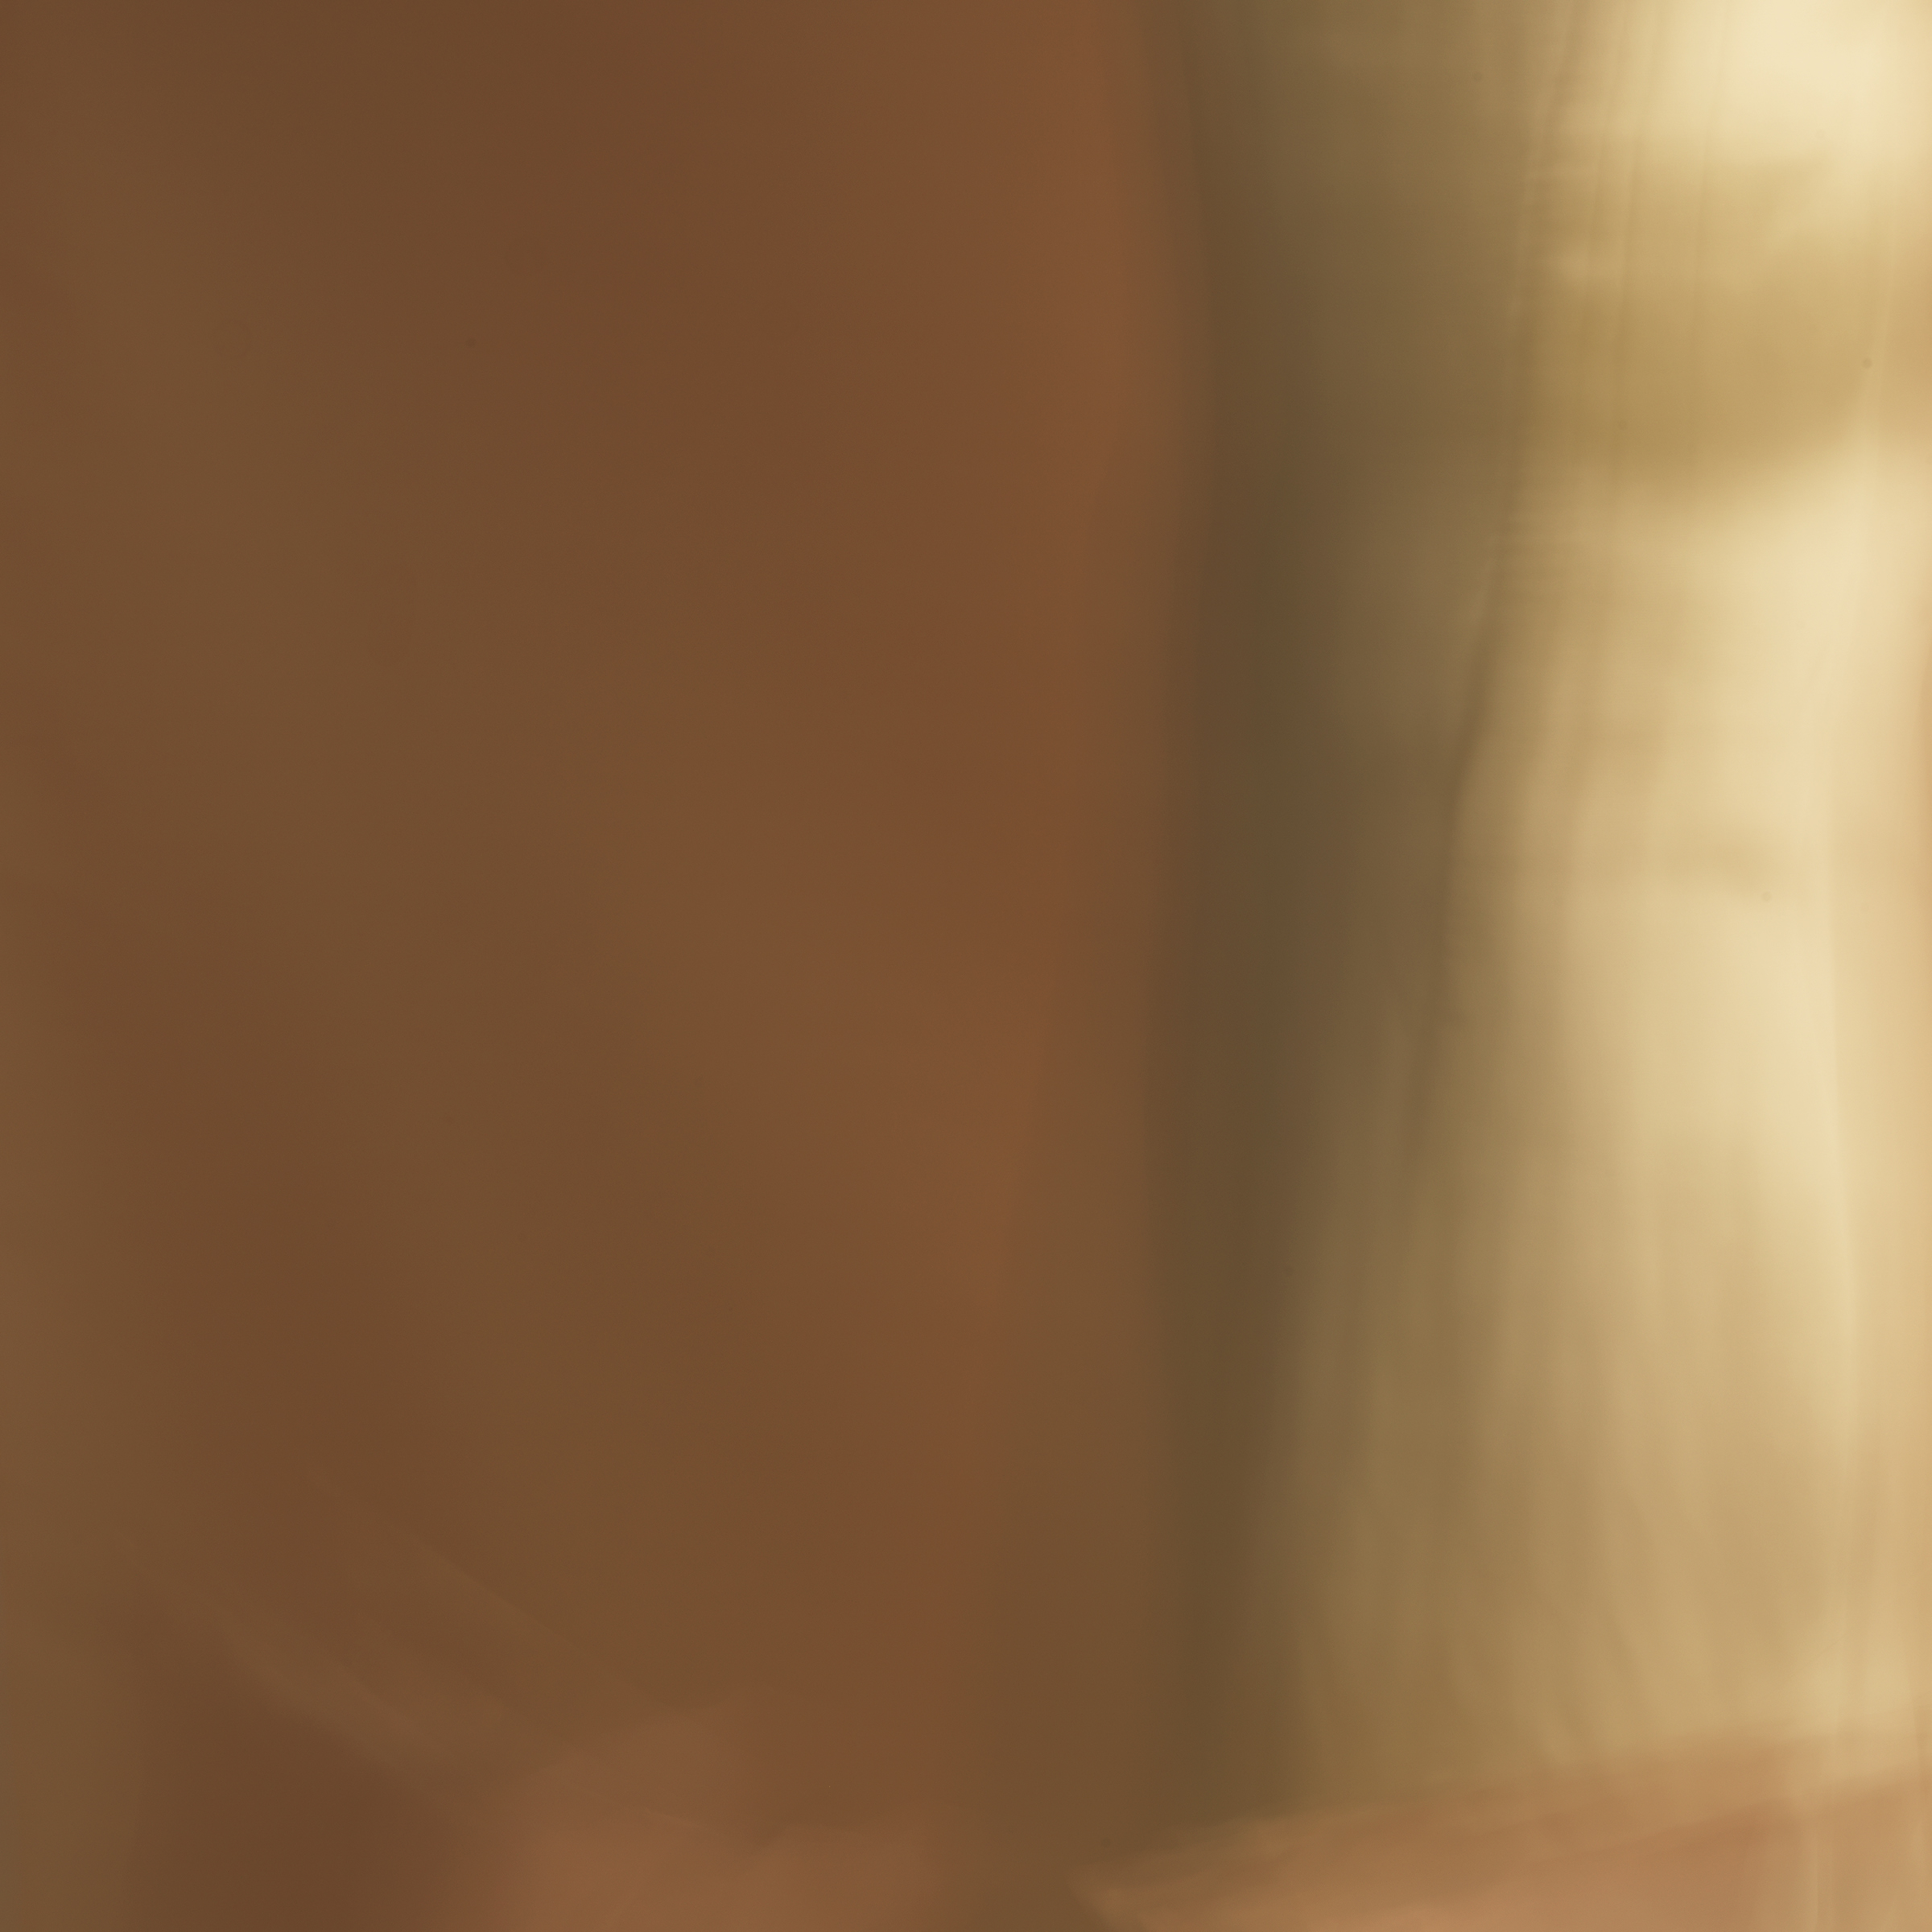 poet's pen, 6, 2014  20 x 20 in. Archival pigment print on Canson paper Edition of 5